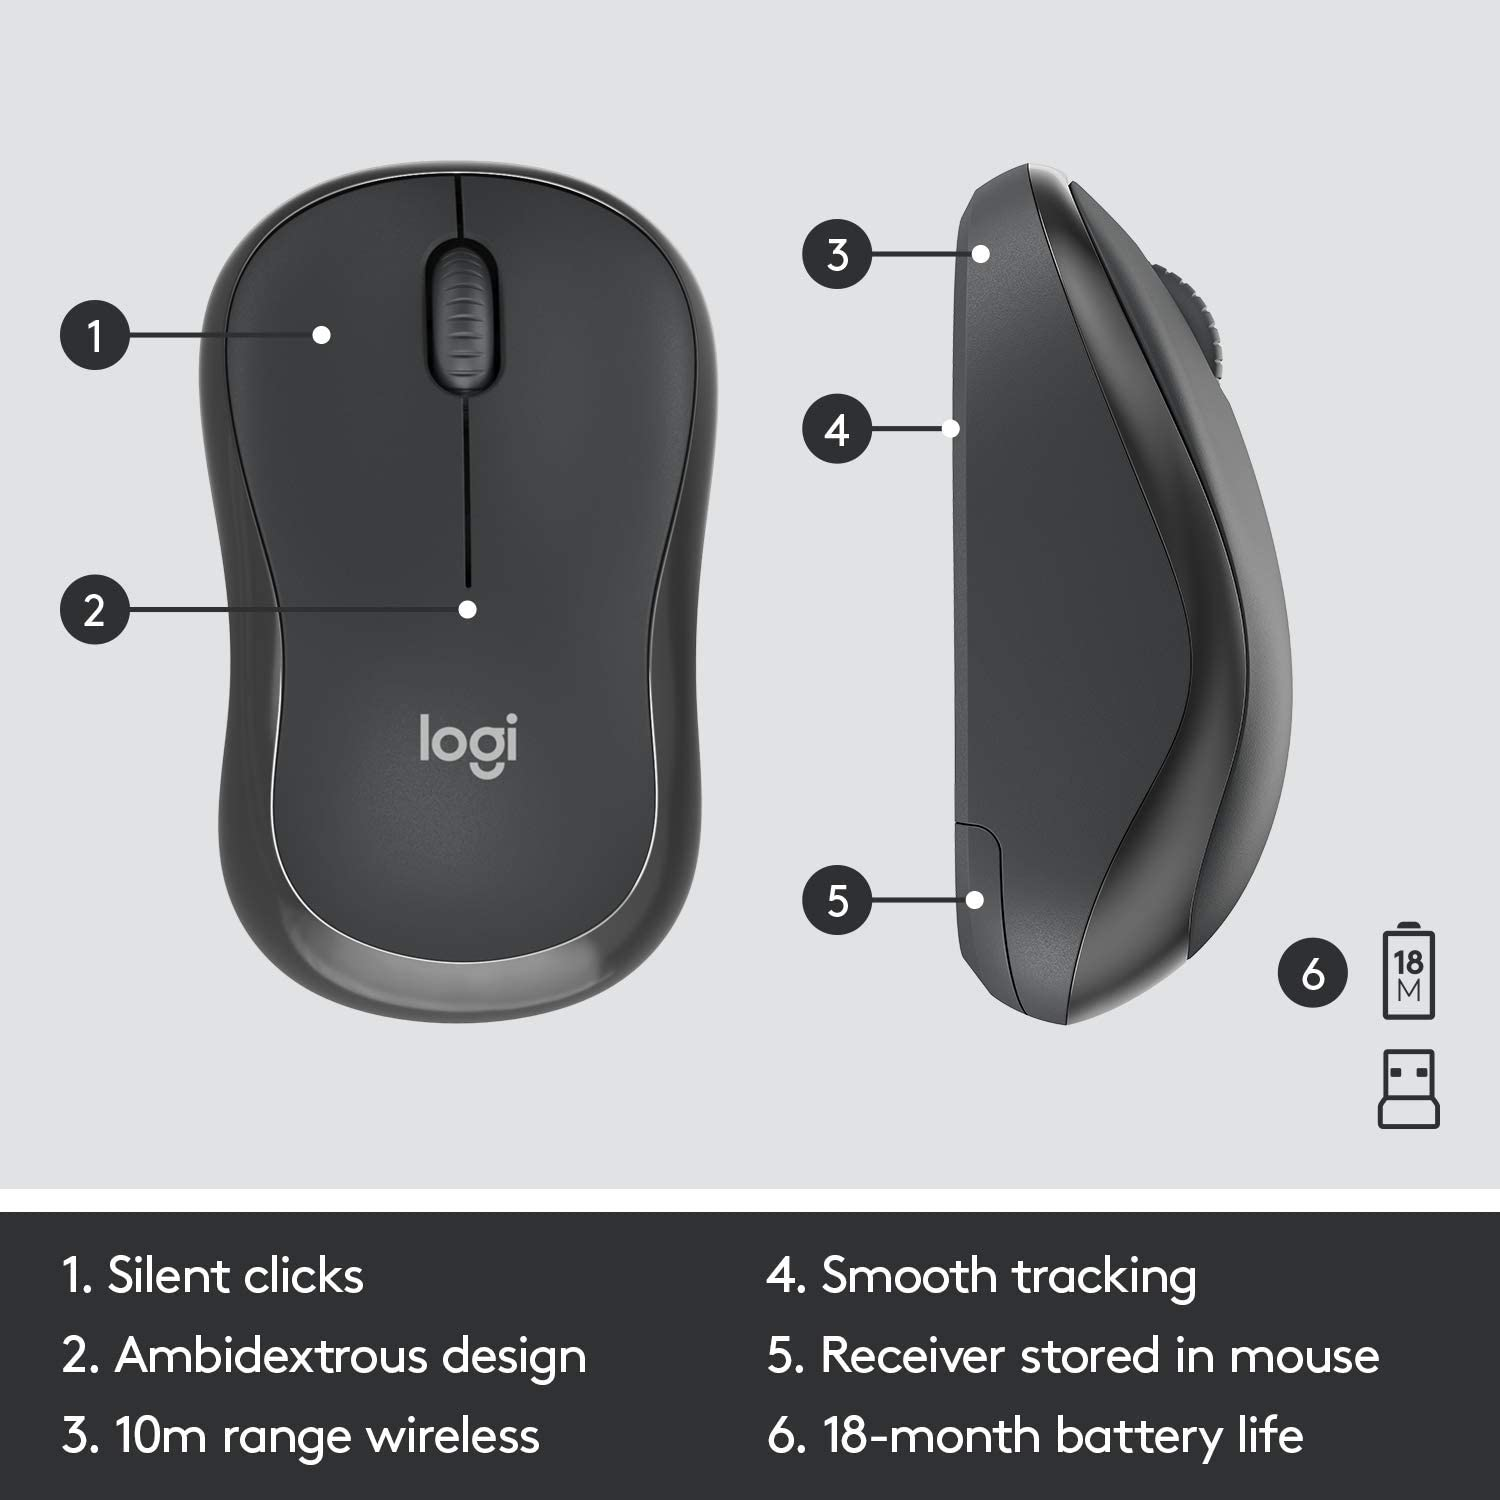 Full Numpad Lag-Free Wireless Logitech MK295 Wireless Mouse /& Keyboard Combo with SilentTouch Technology Off White Advanced Optical Tracking 90/% Less Noise